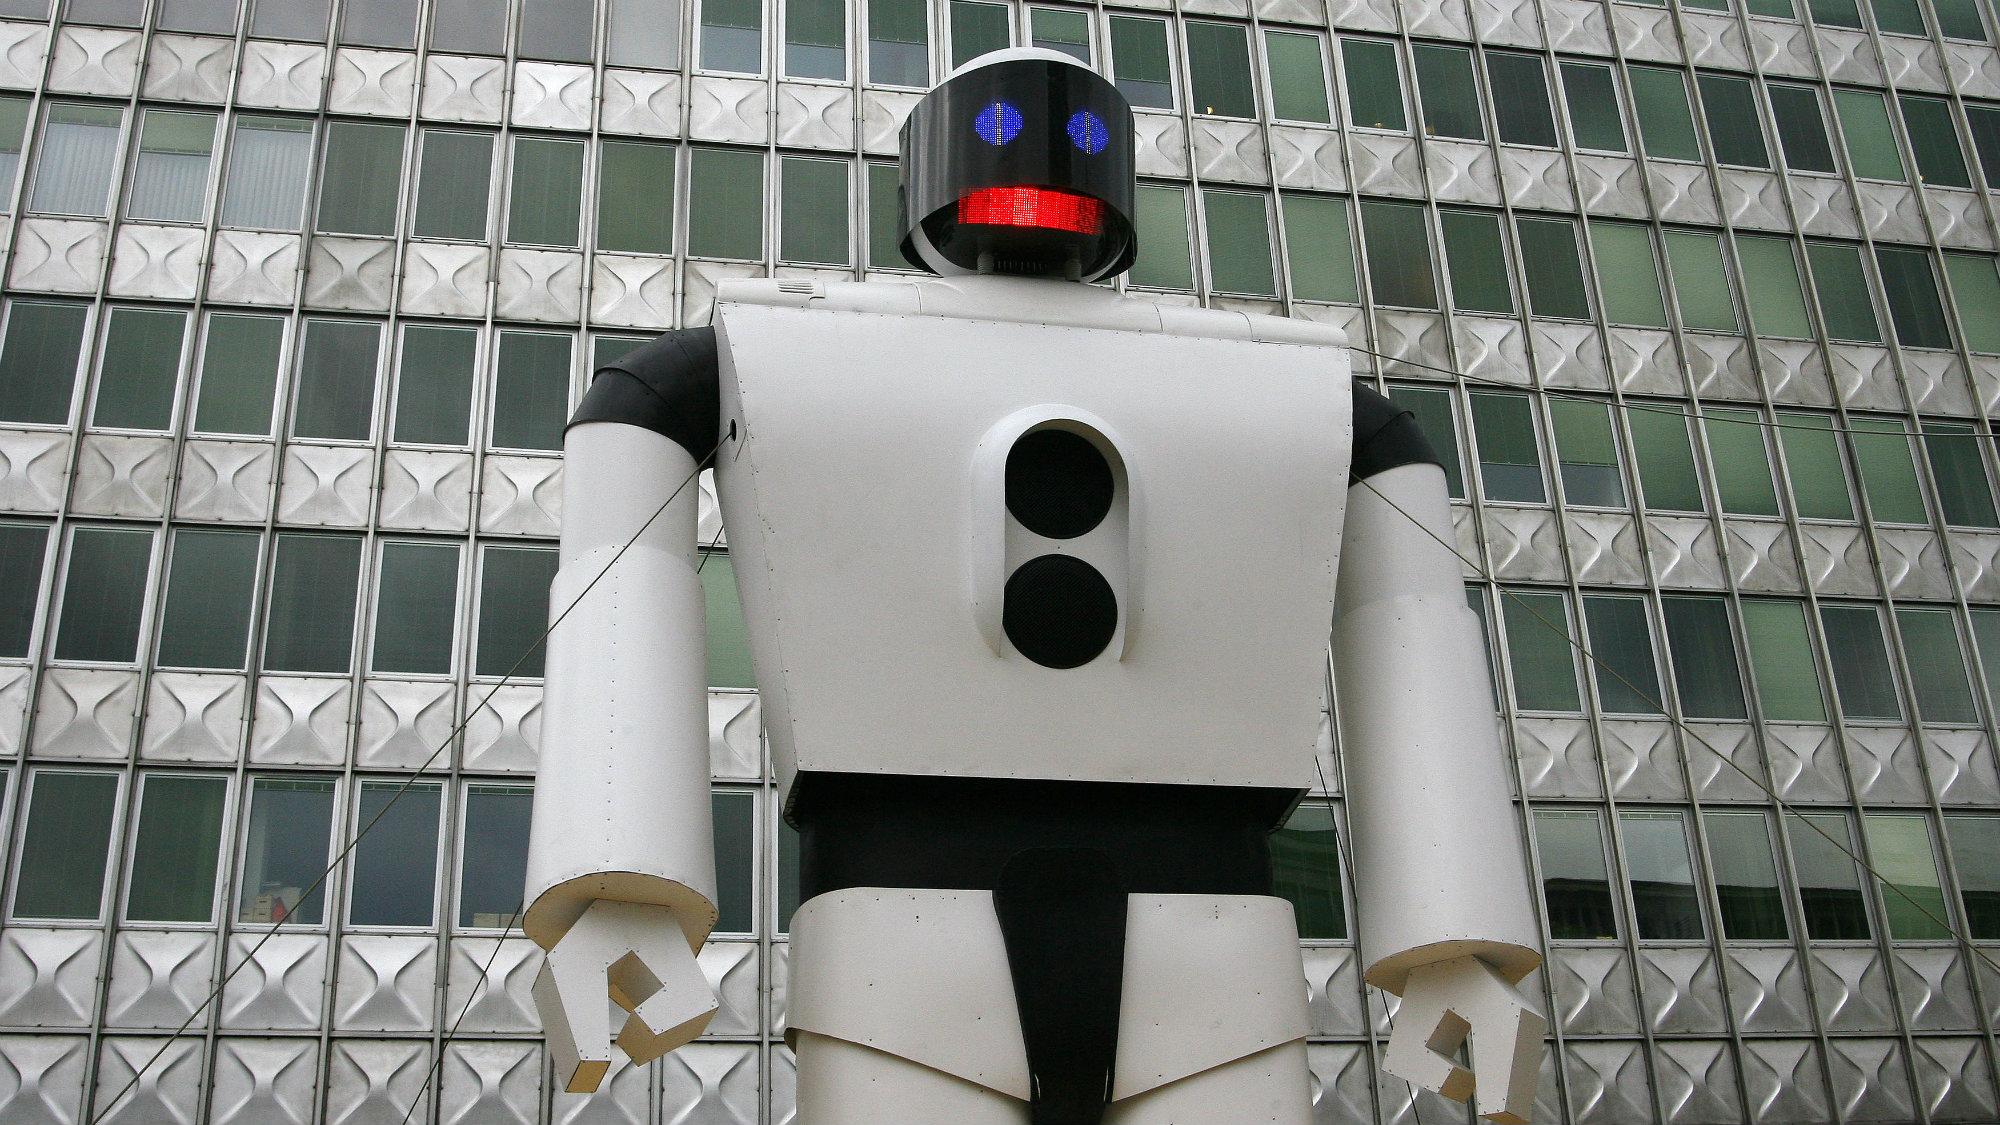 Robot in front of a building